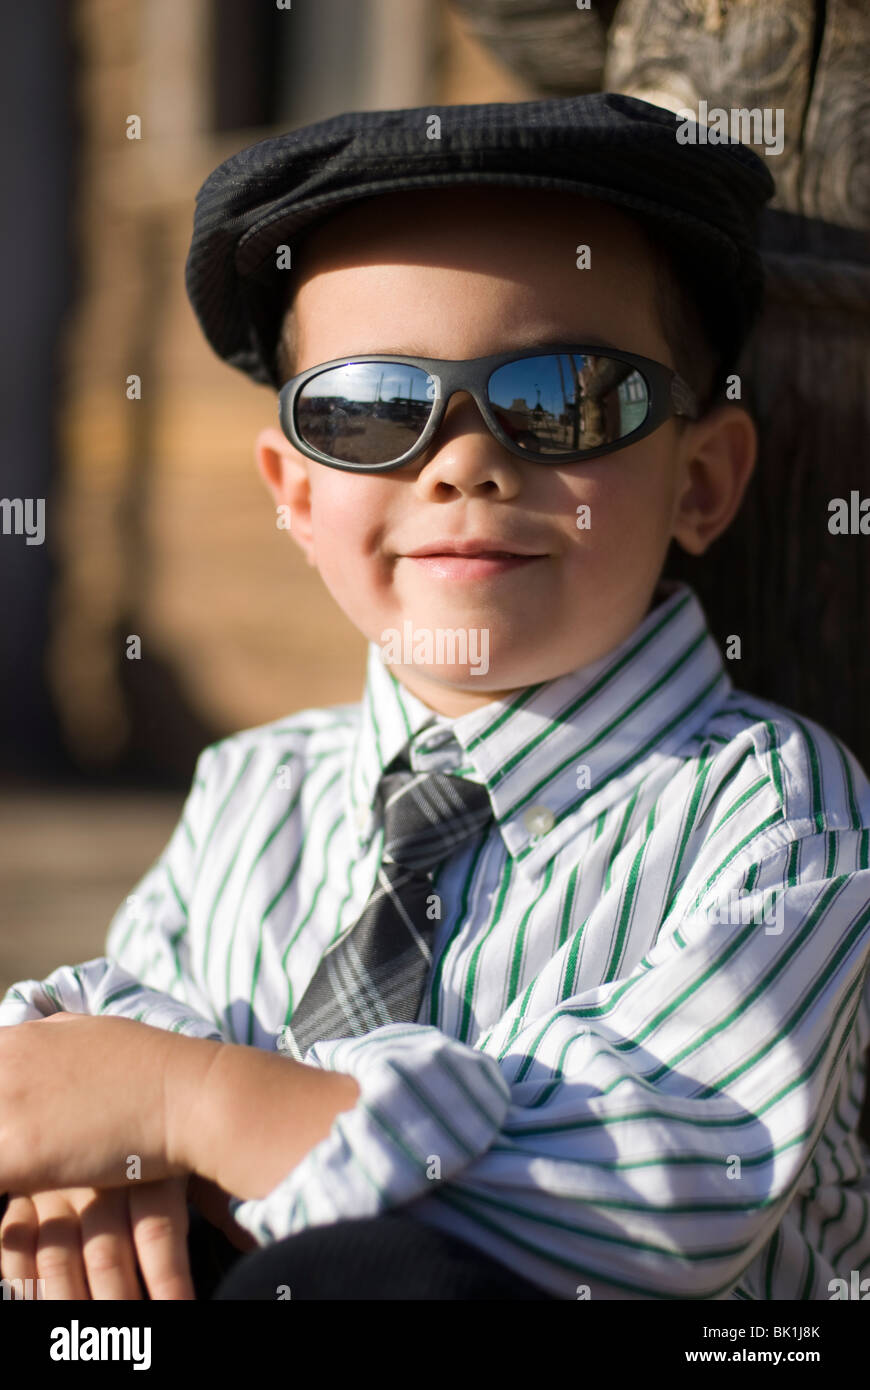 332affb6662c9 A cute 2-4 year old mixed race boy wearing a hat and sunglasses(Released)